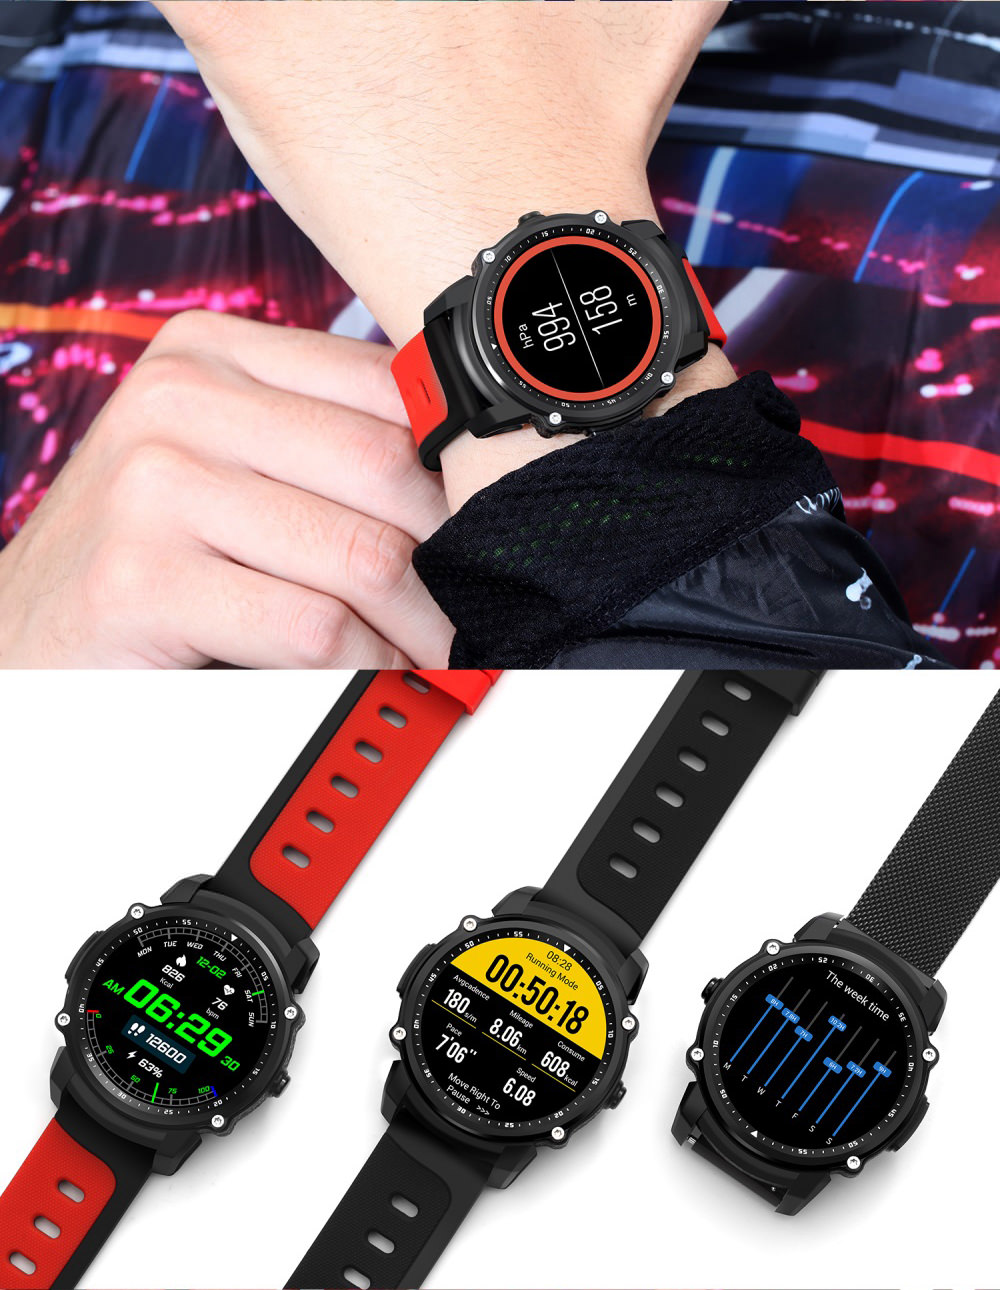 kingwear fs08 bluetooth smartwatch